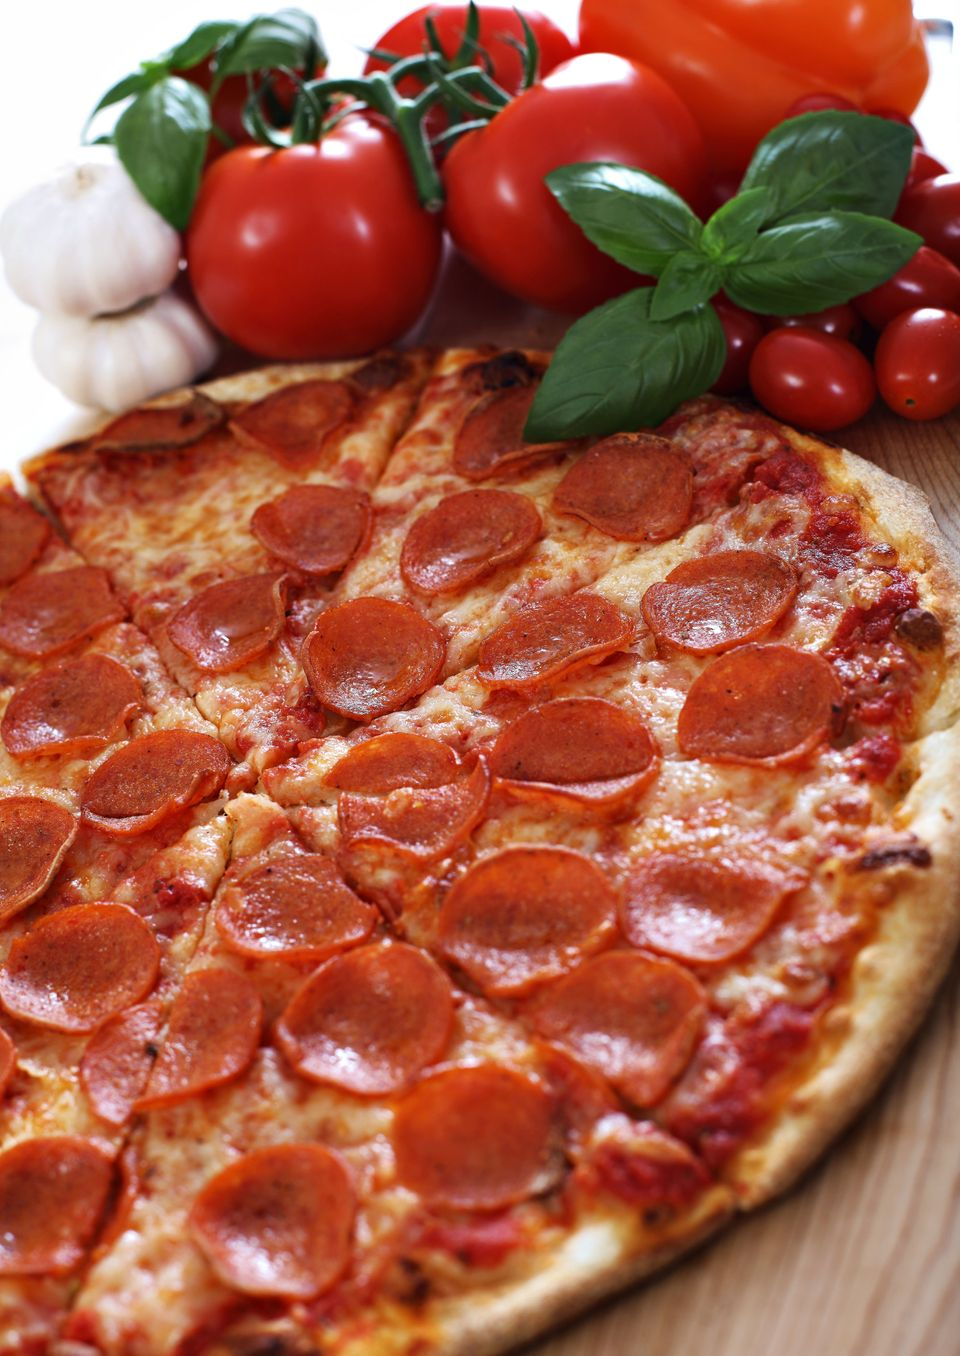 The calories in pizza add up dramatically, especially if you have more than one slice. One way to feel full with fewer slices